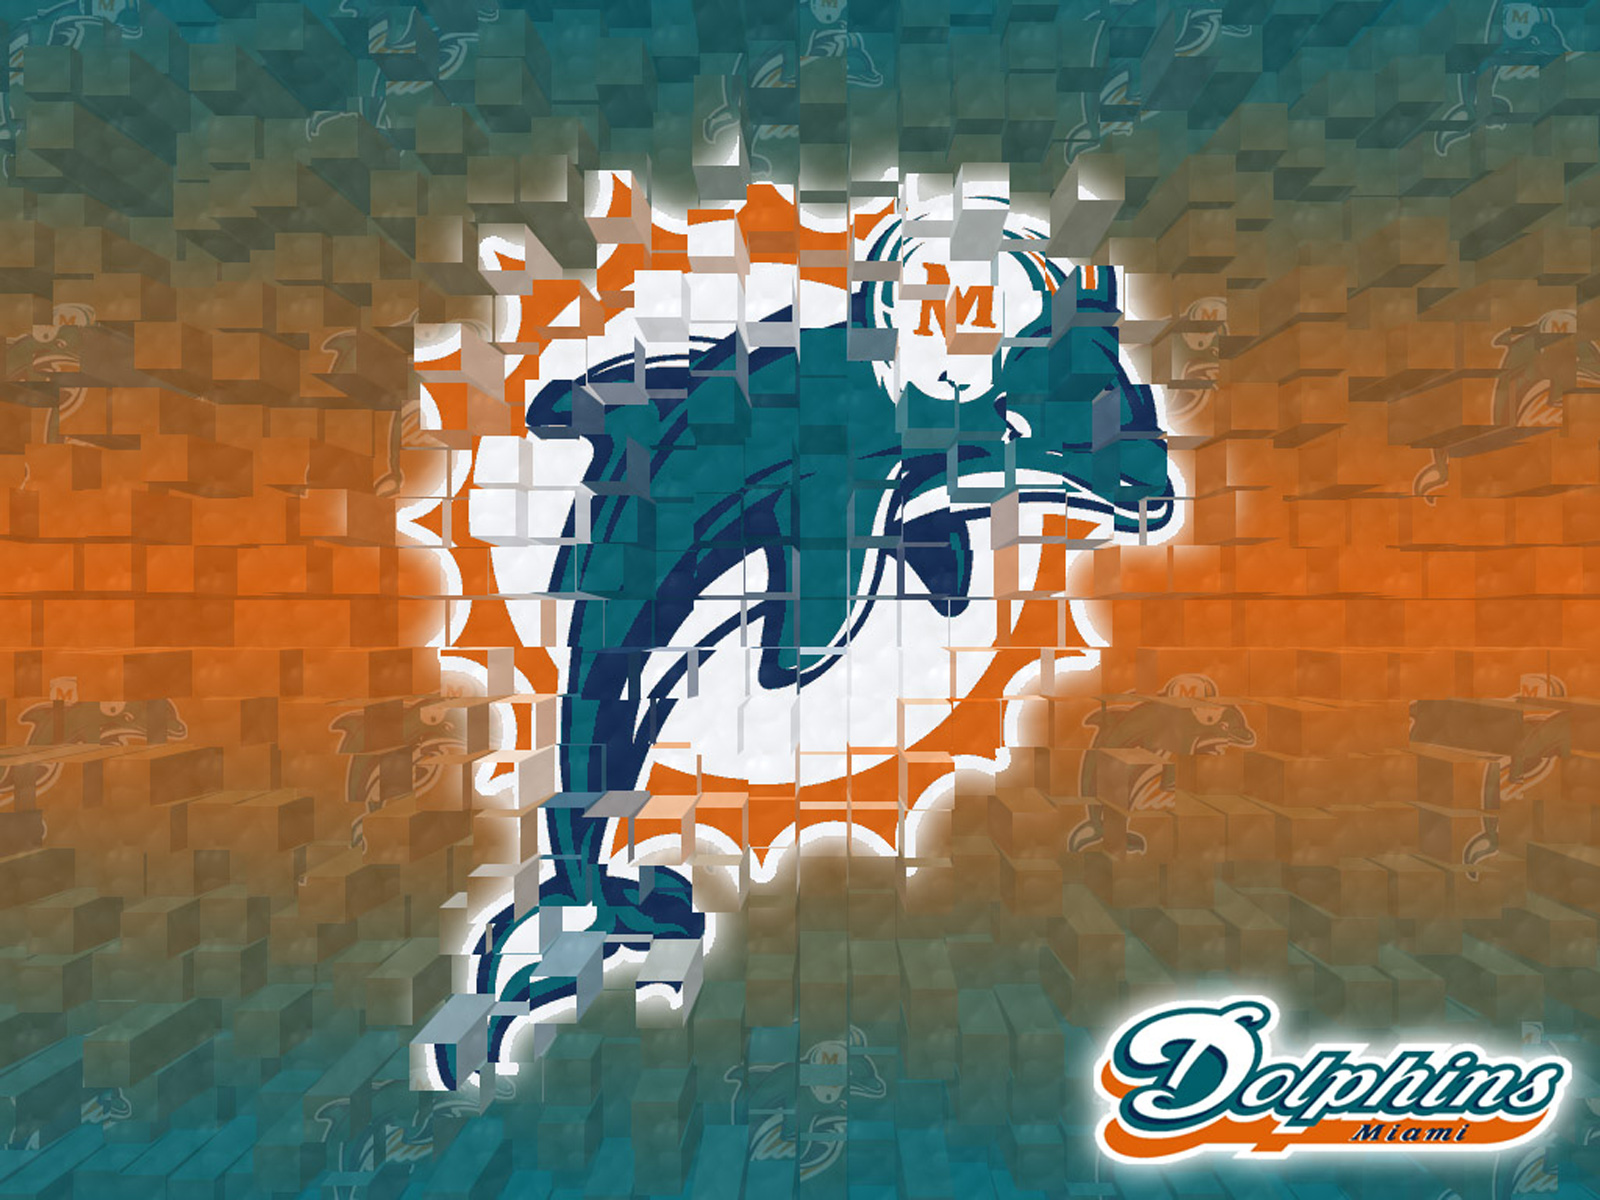 miami dolphins - photo #28